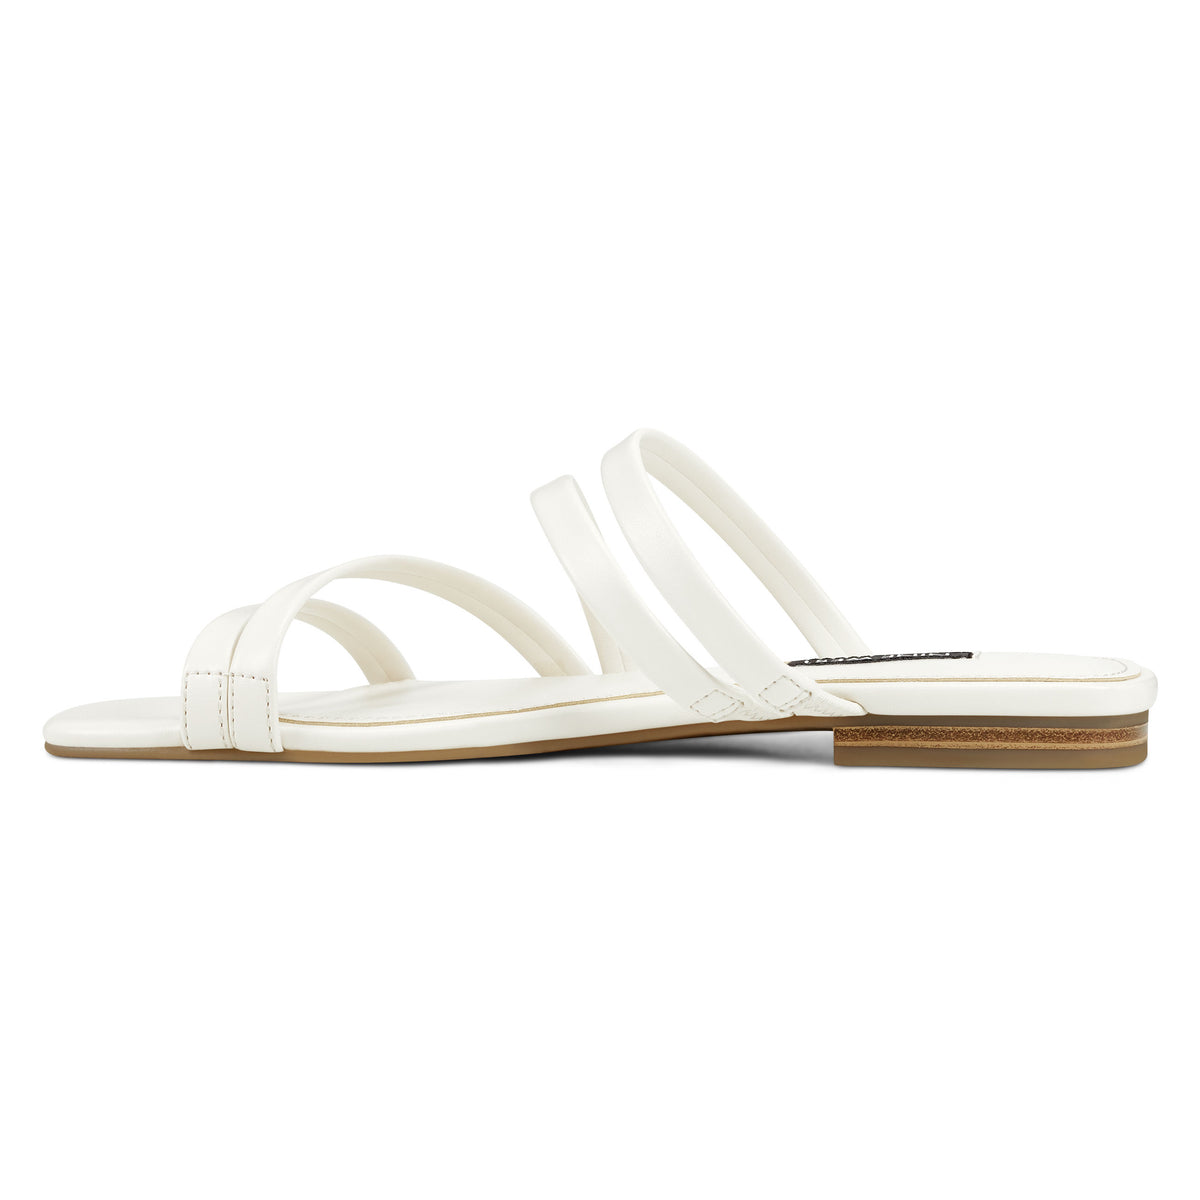 sean-flat-slide-sandals-in-ivory